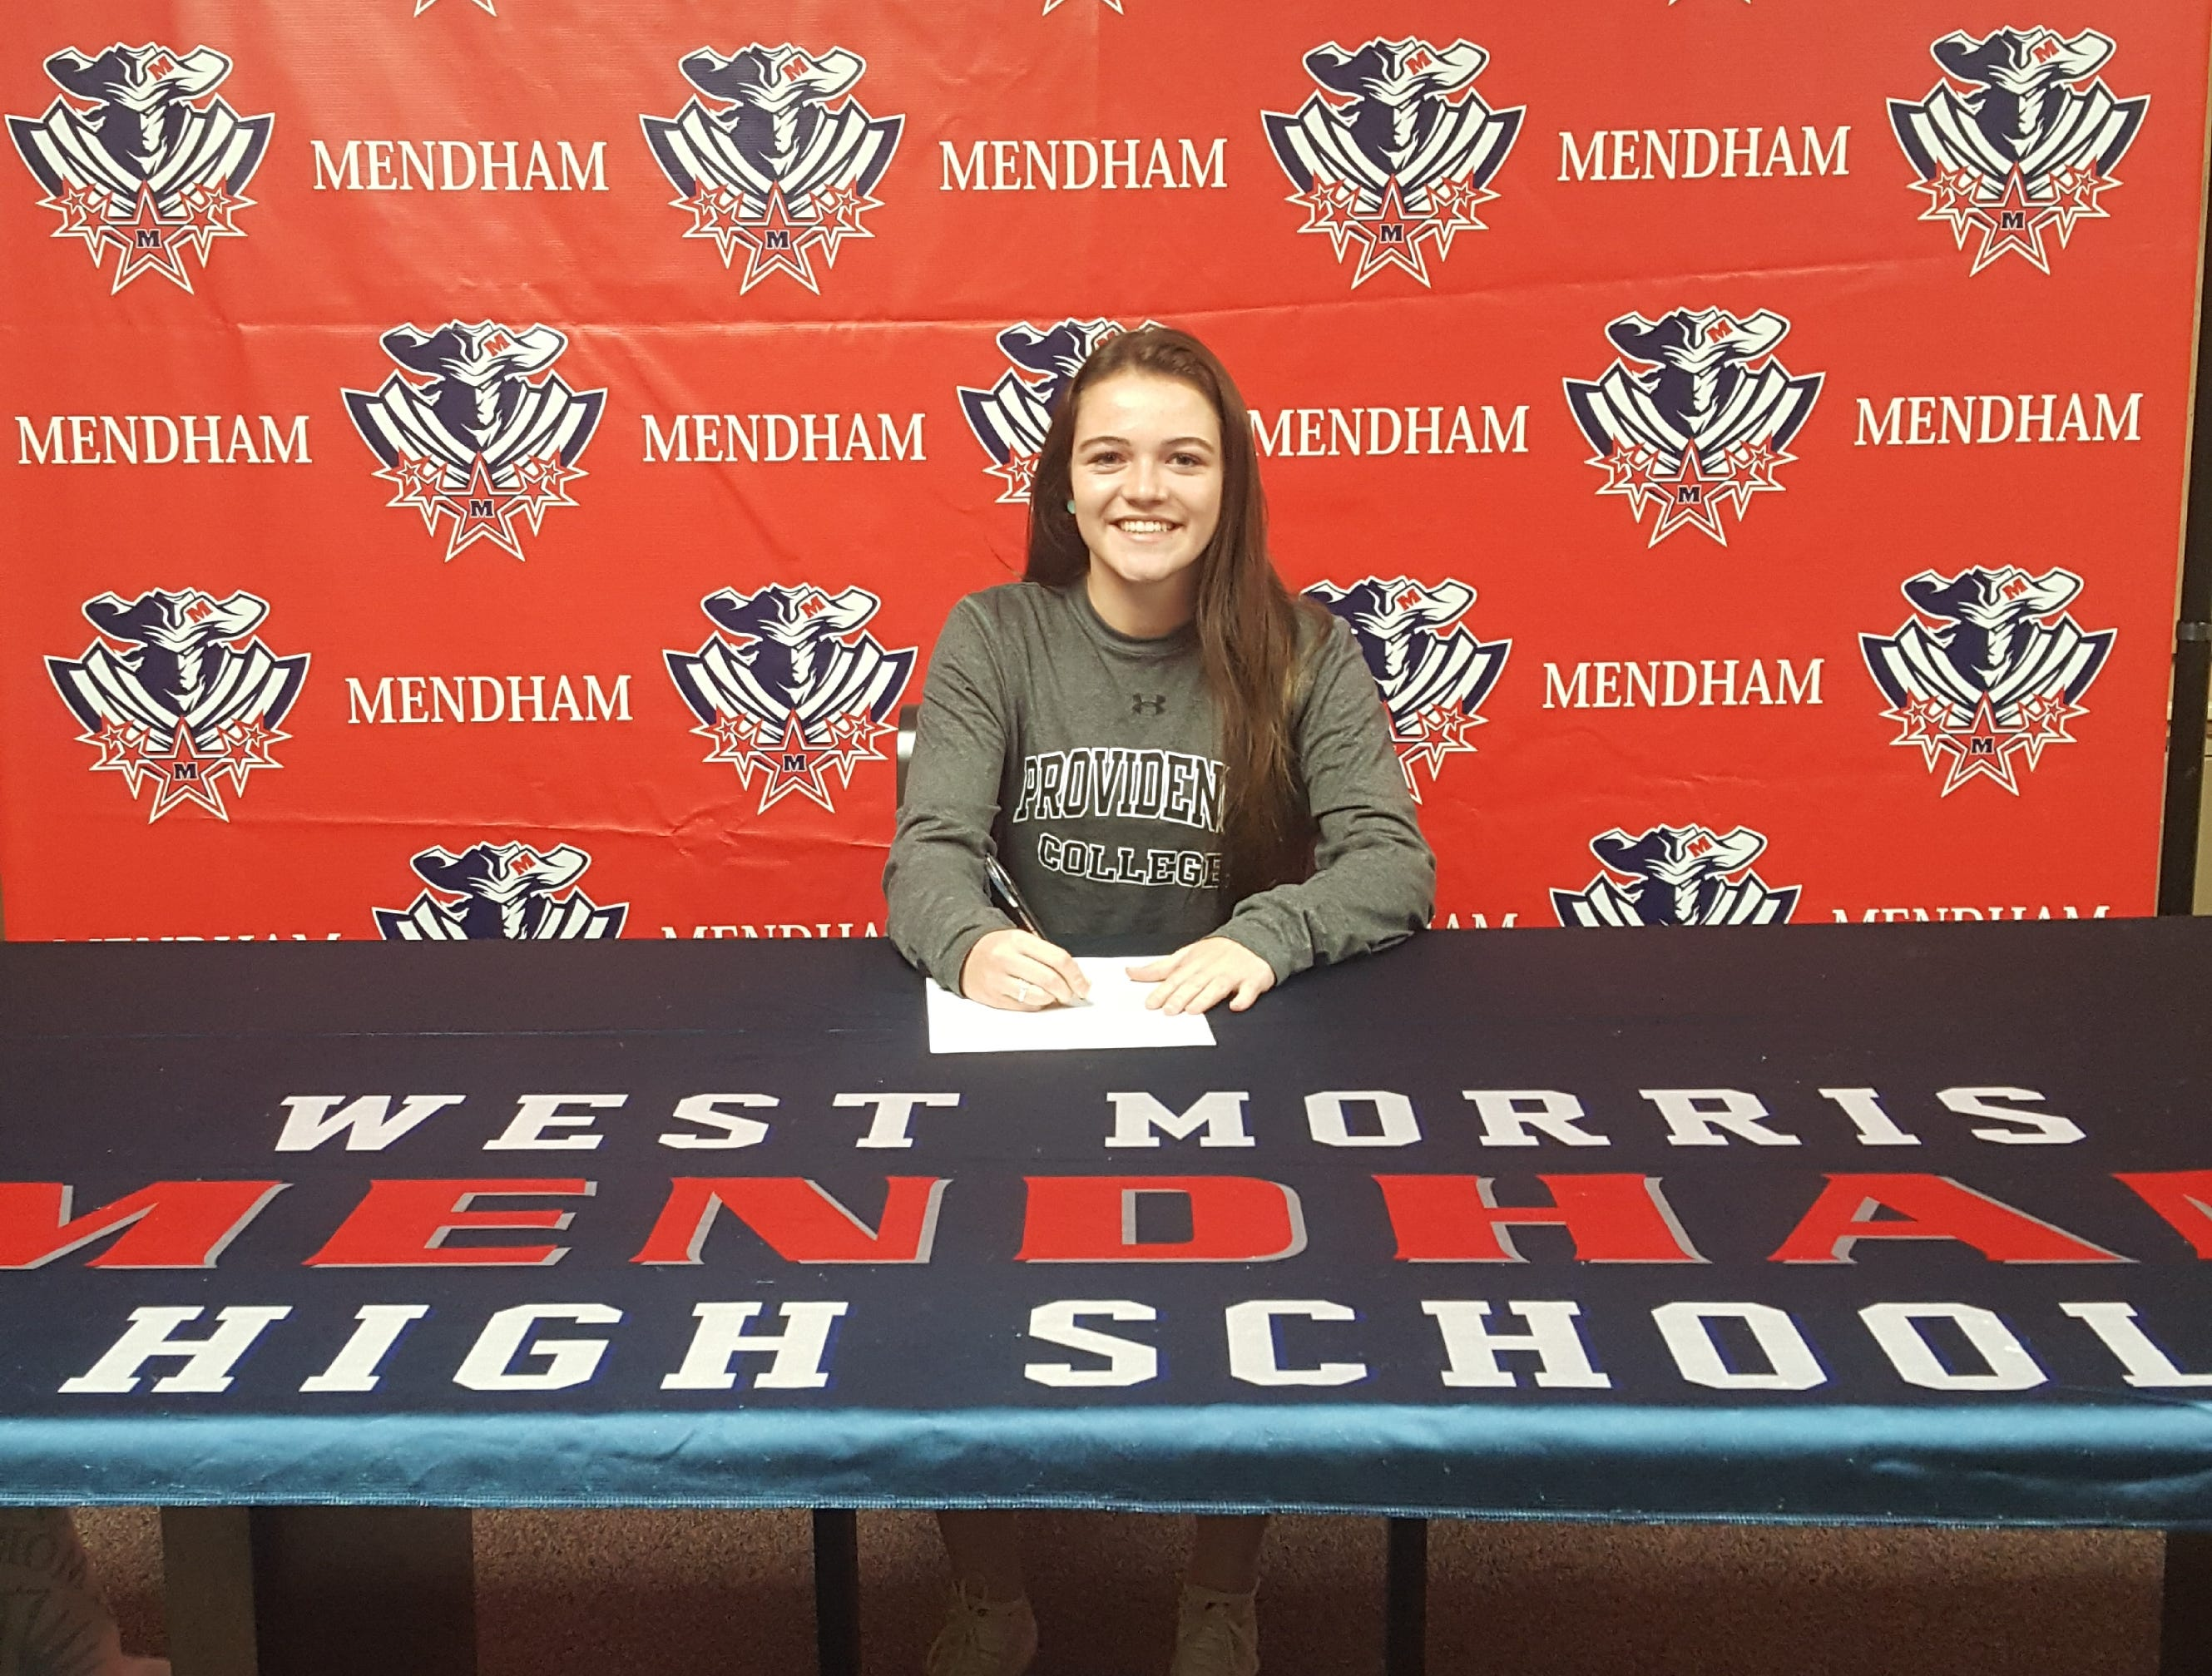 Mendham senior Ava Brandt signed a National Letter of Intent with Providence soccer.